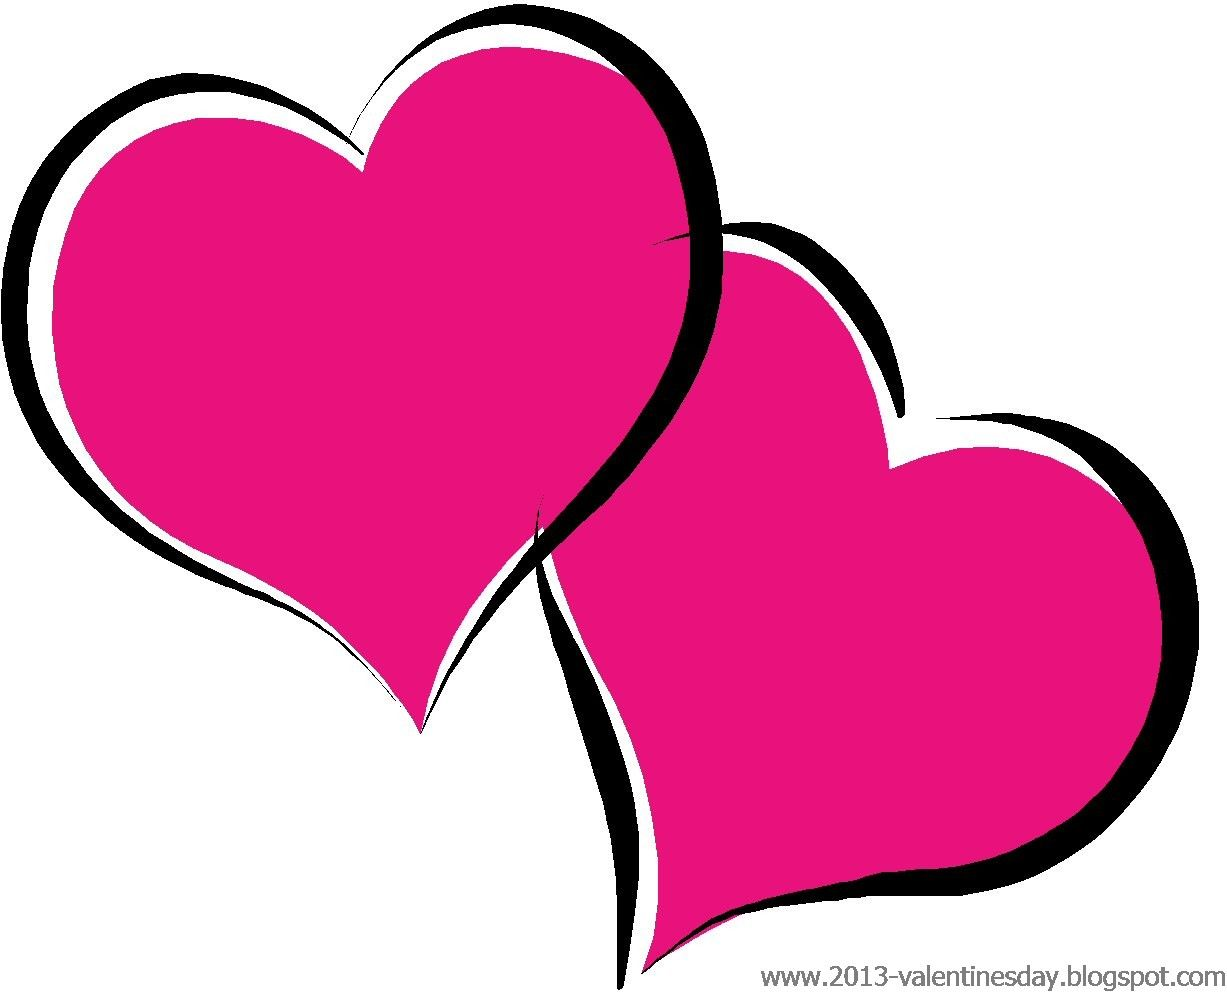 Cute Black And White Valentine Heart Clipart.